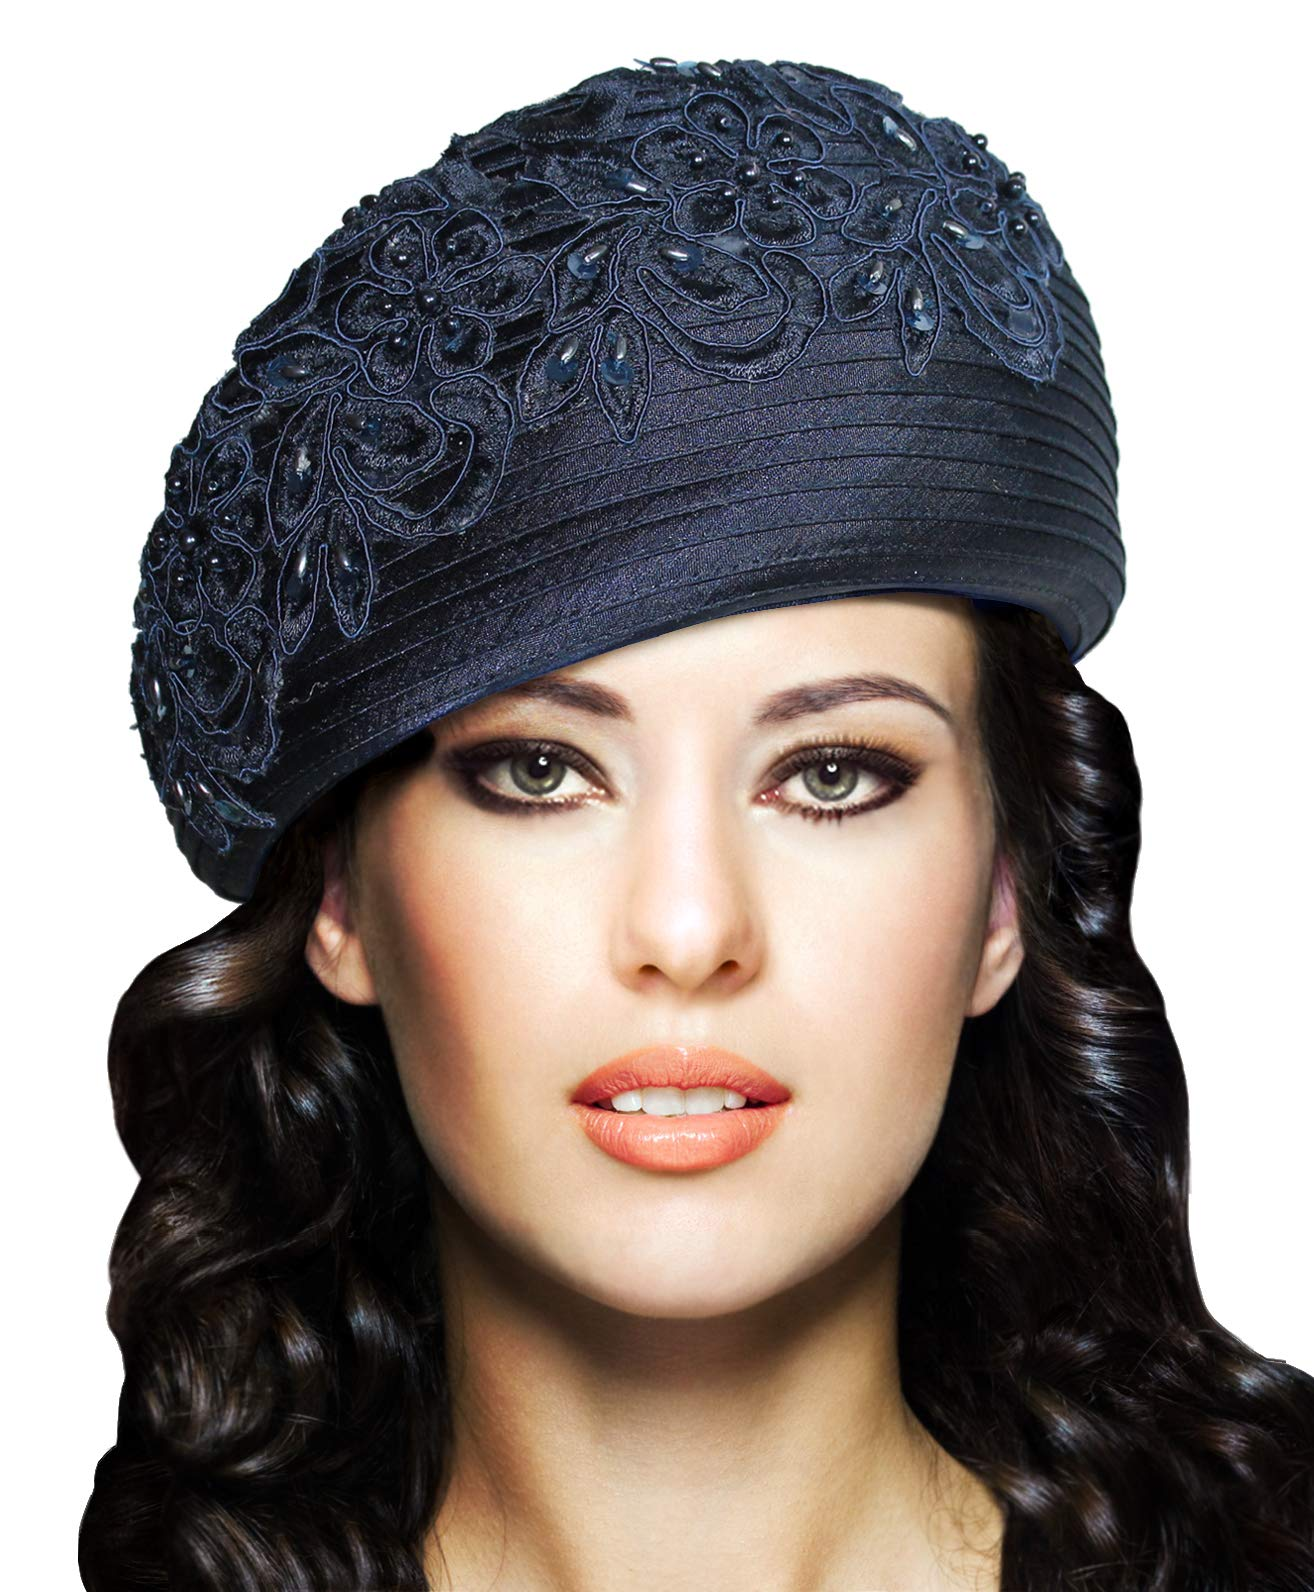 Mr. Song Millinery Beret Cloche Hat with Premium Lace - Q62 (Navy Blue)